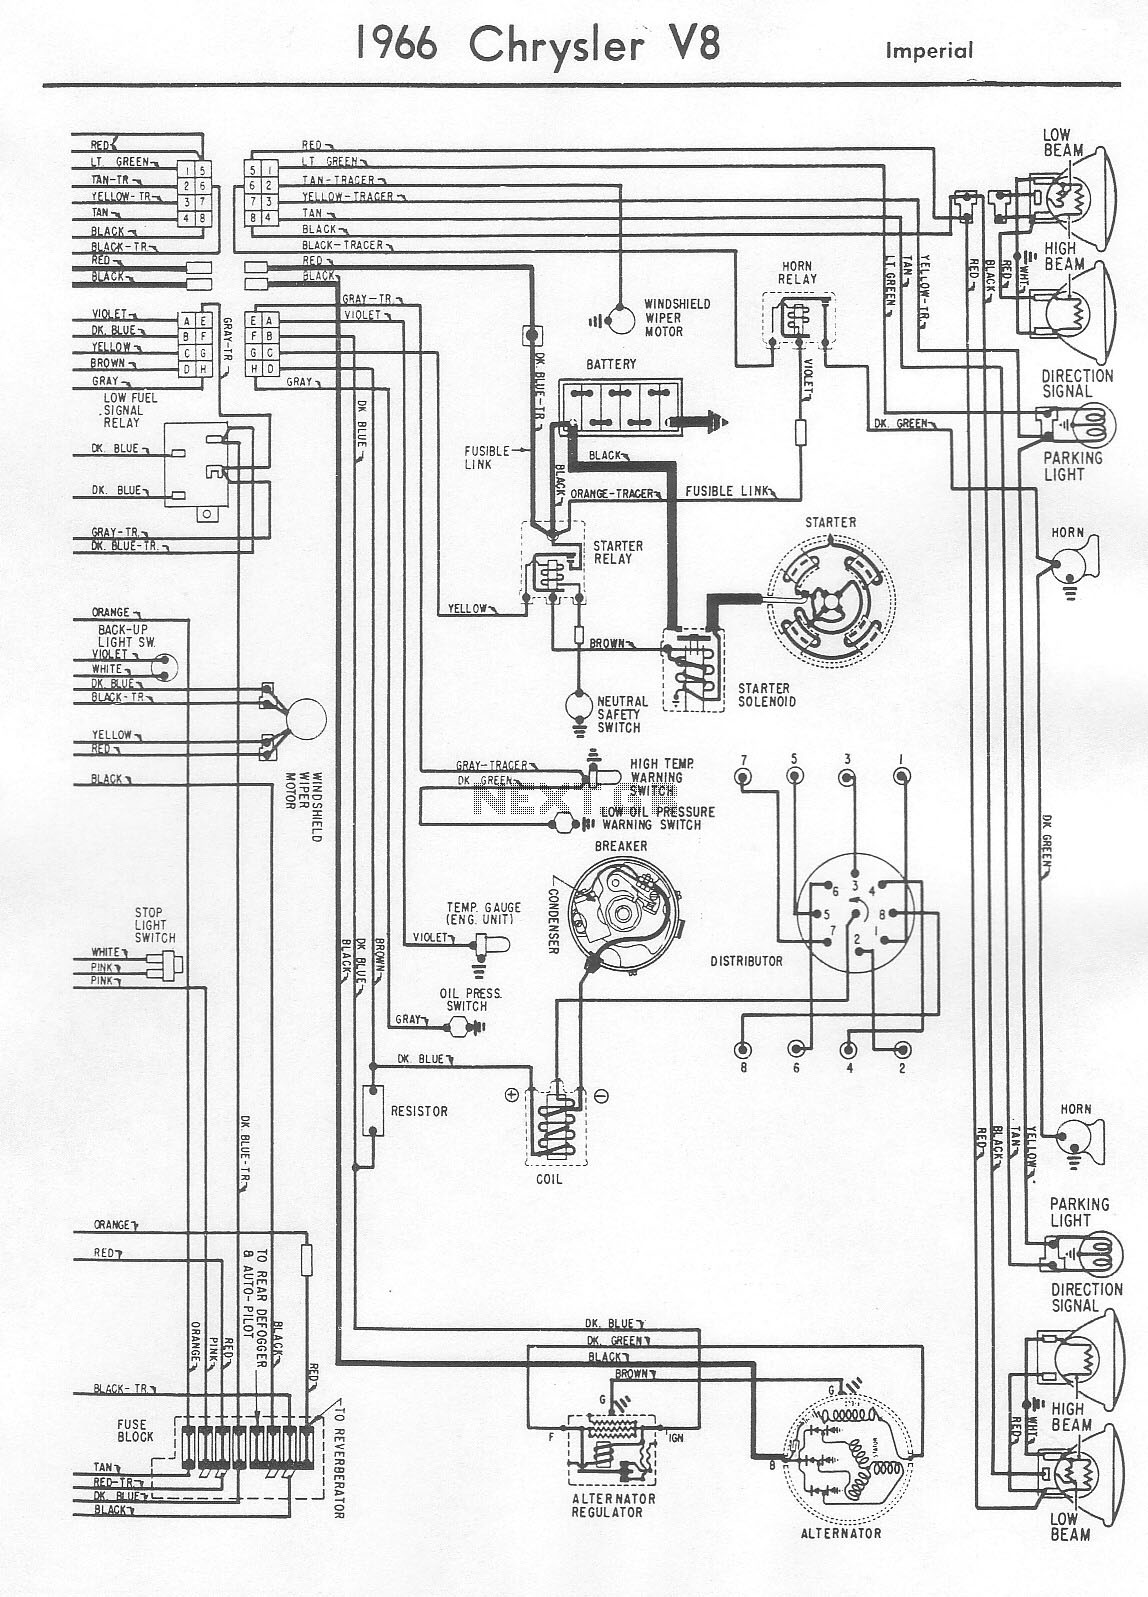 Mk4 2 0 Jetta Engine Diagram Diagrams Auto Fuse Box Diagram